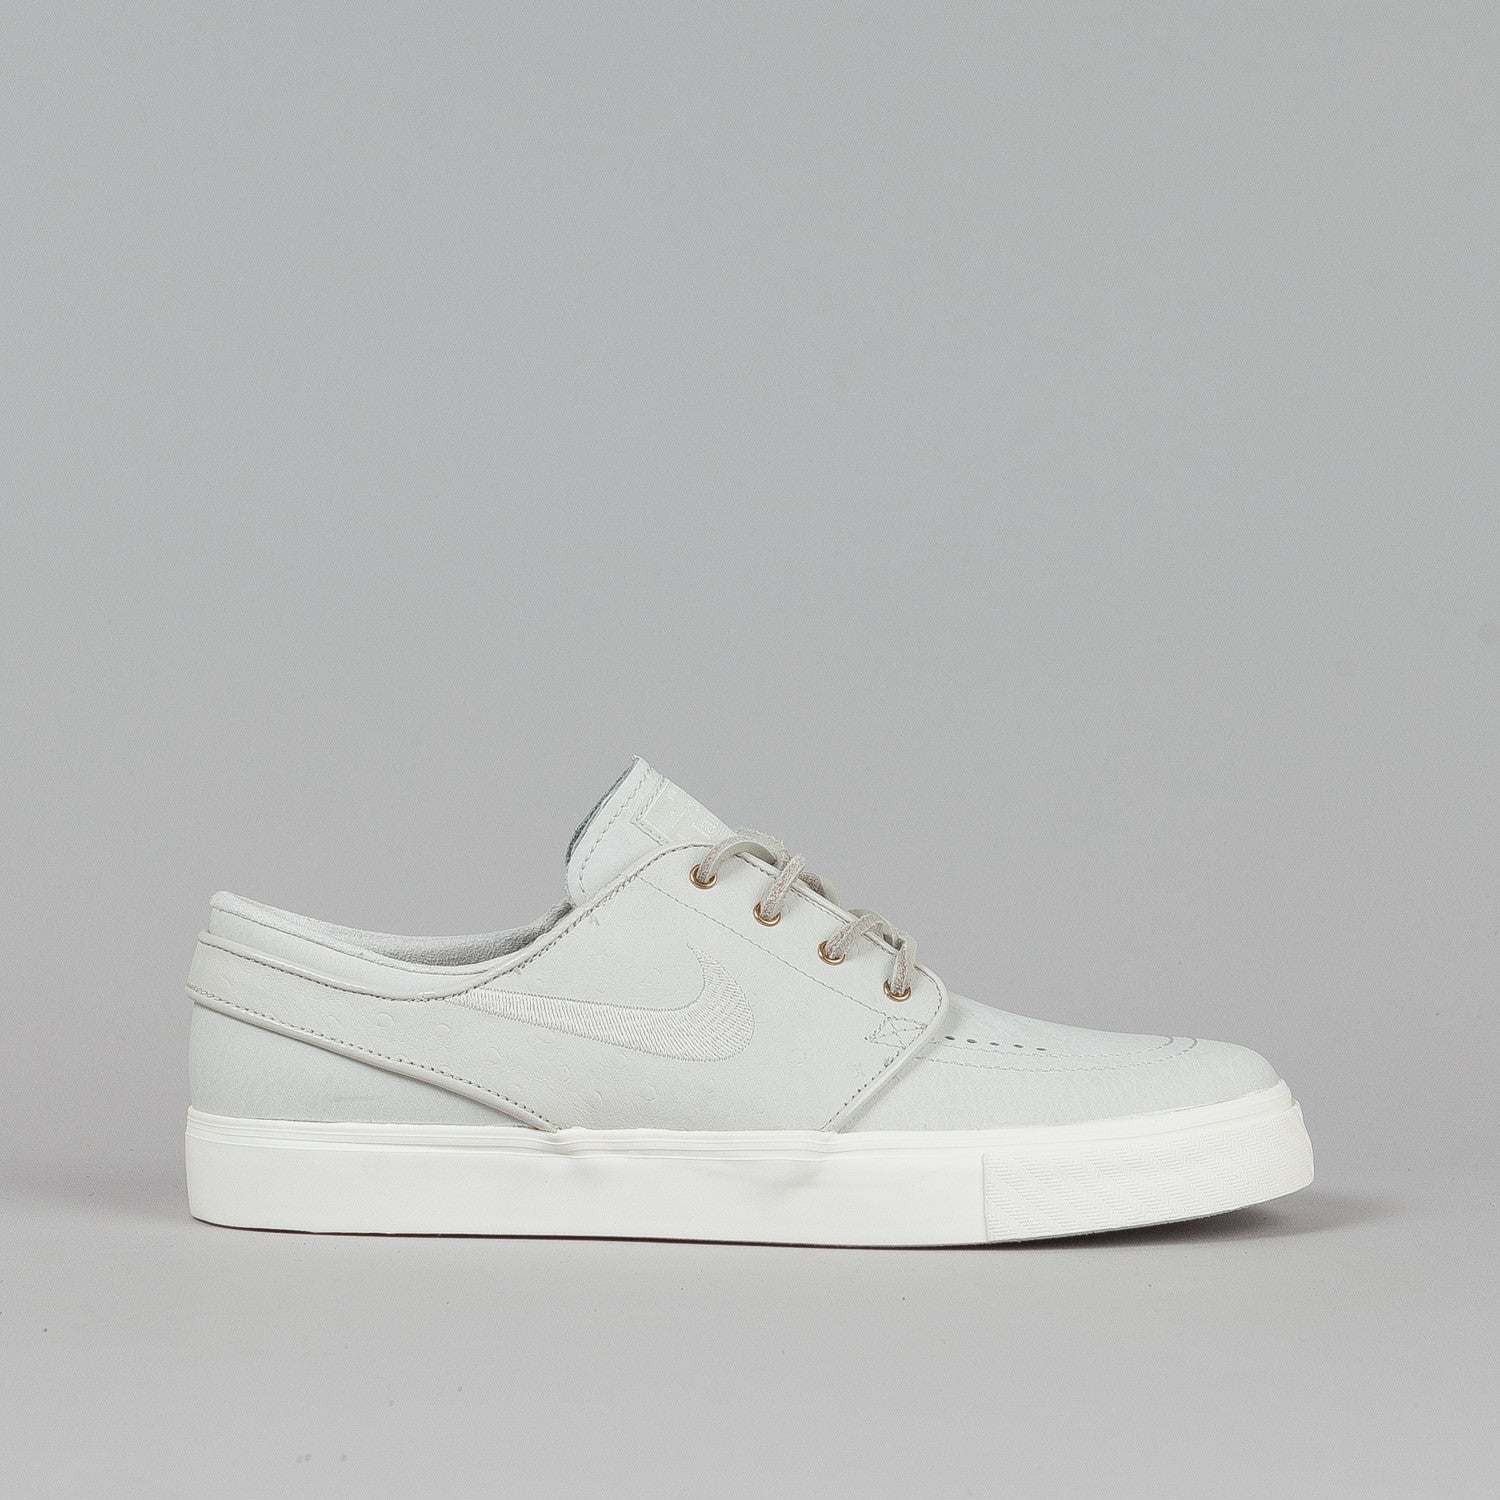 Nike SB Stefan Janoski PREM Shoes Light Bone / Light Bone